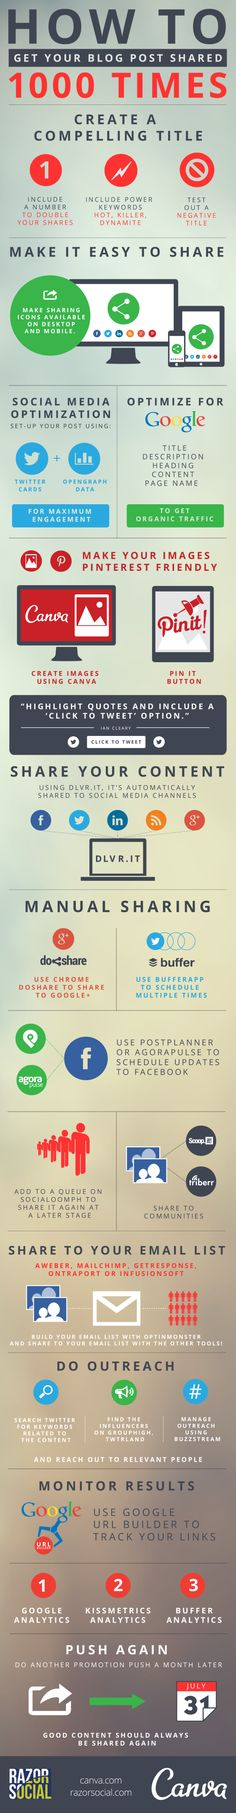 How to maximize your blogpost shares